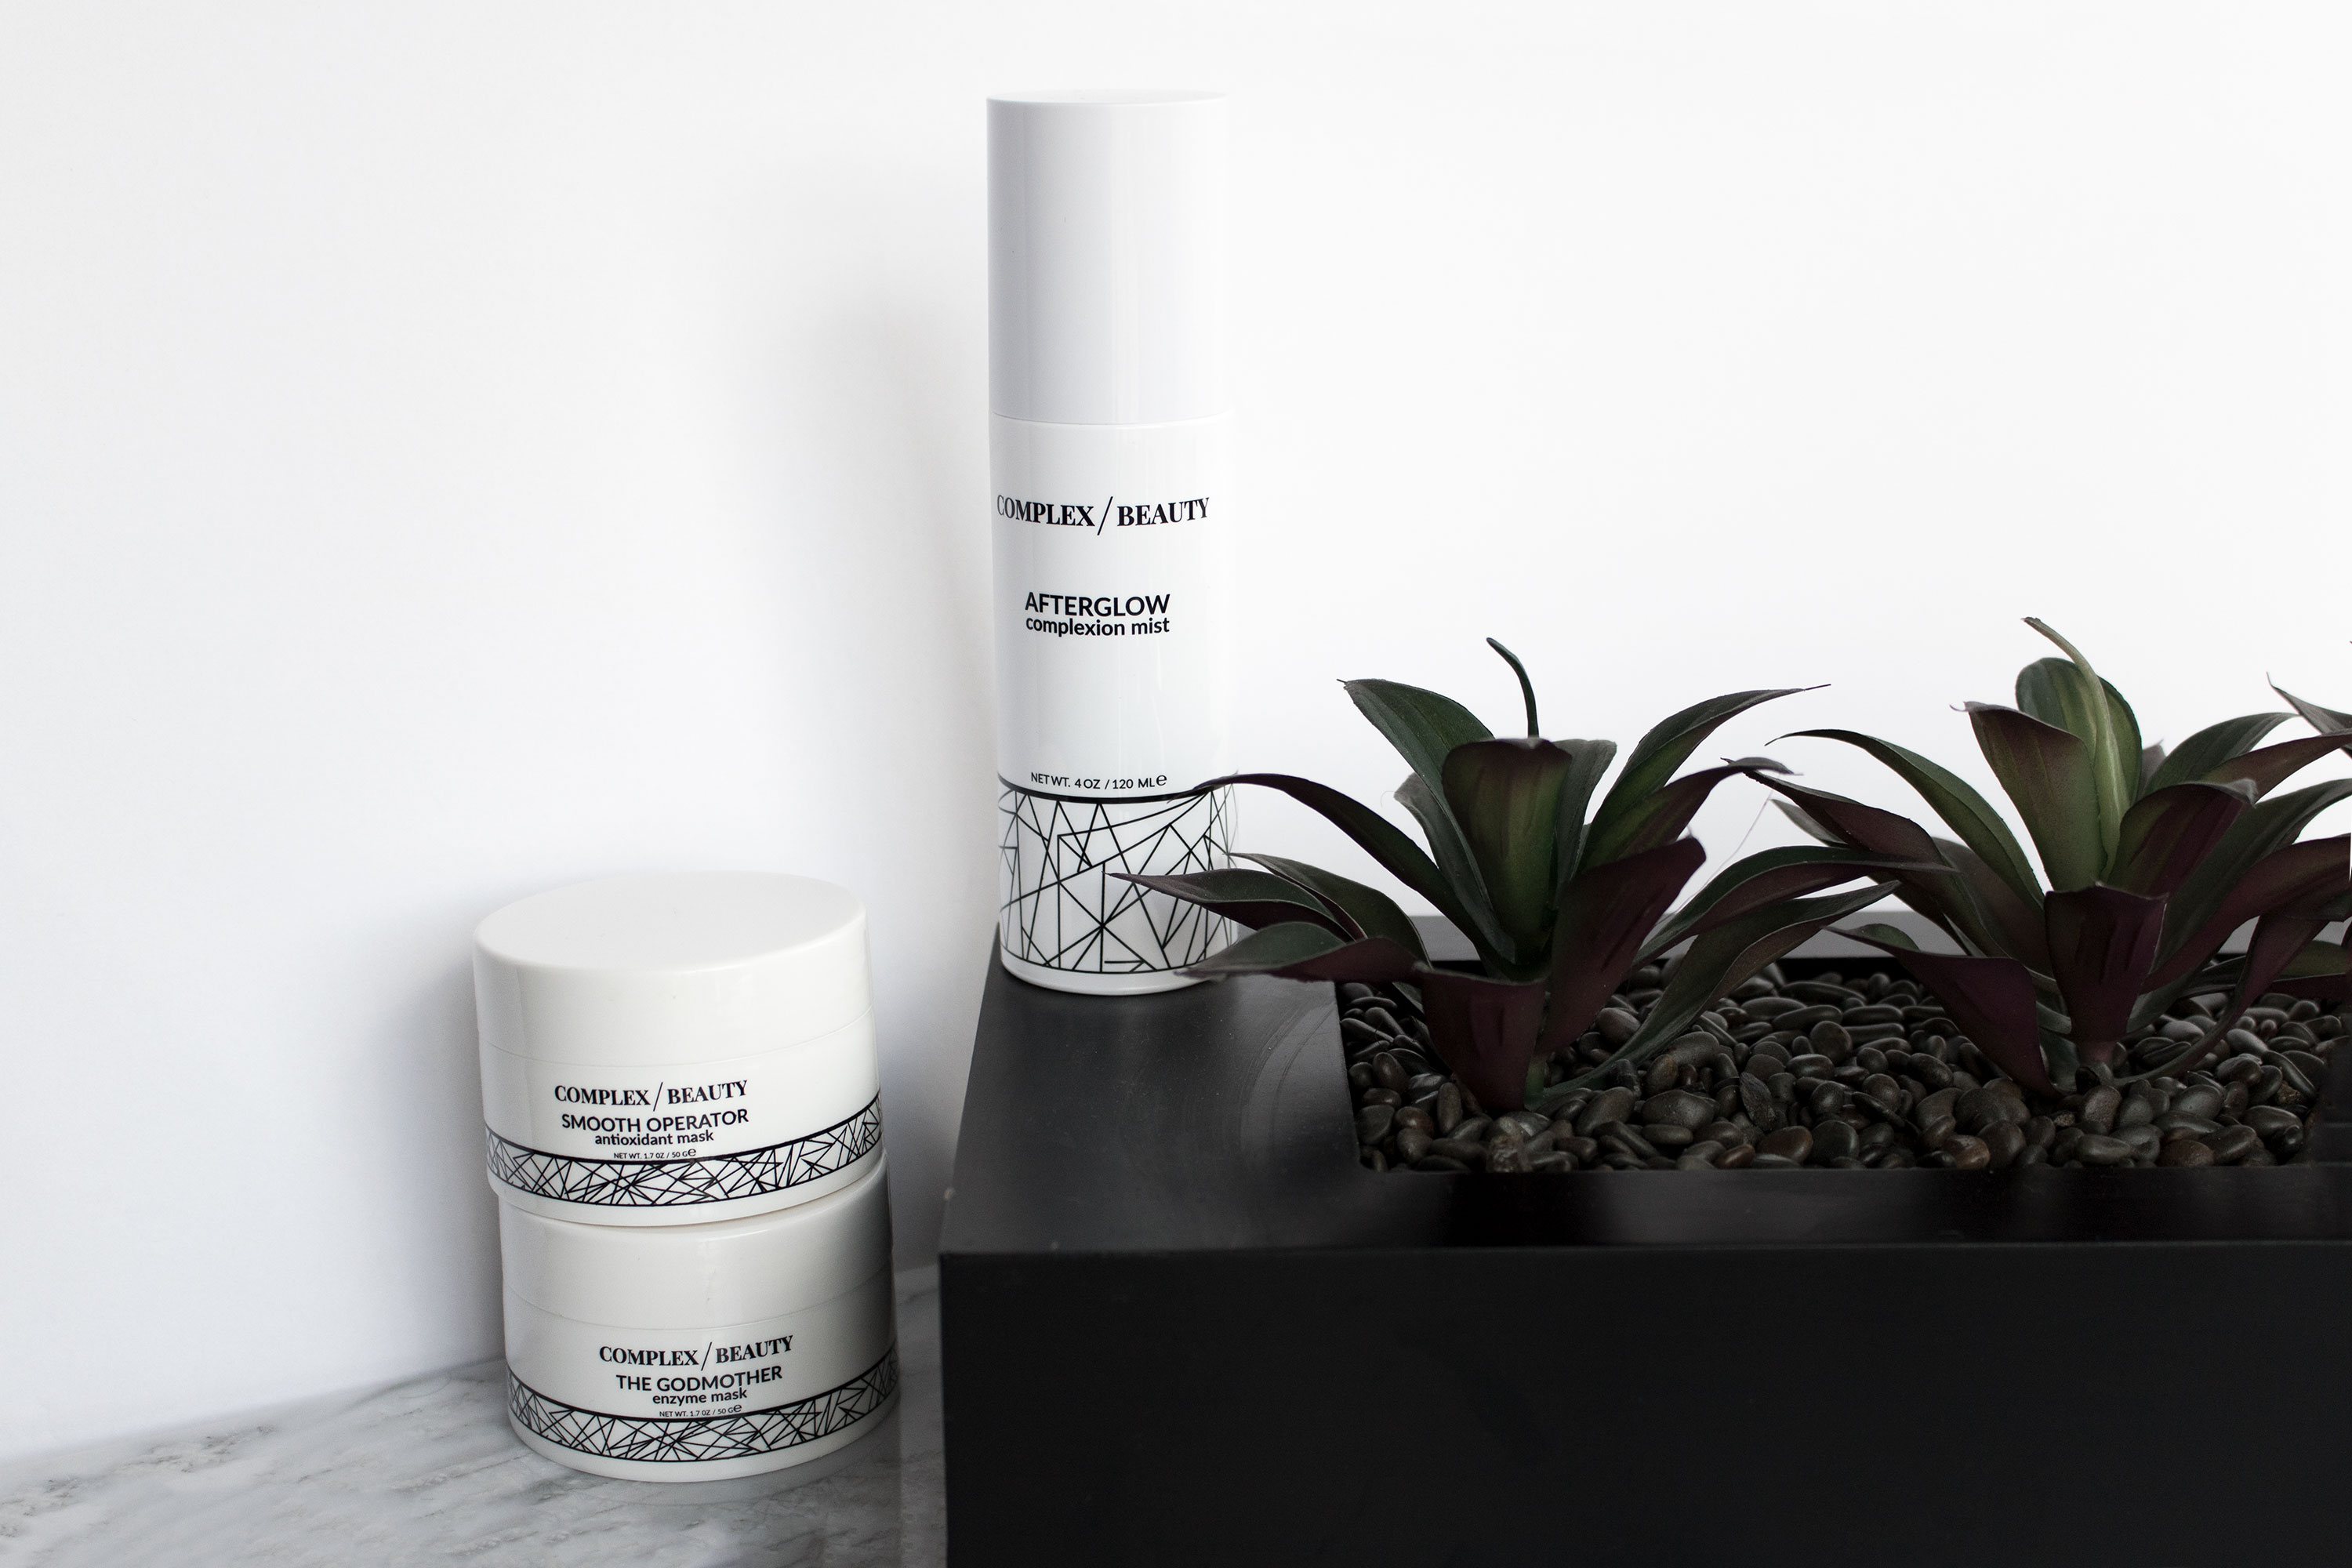 Skin Texture: The Products That Helped Me Get Rid of Mine- Complex Beauty Afterglow complexion mist; The Godmother enzyme mask; Smooth Operator antioxidant mask